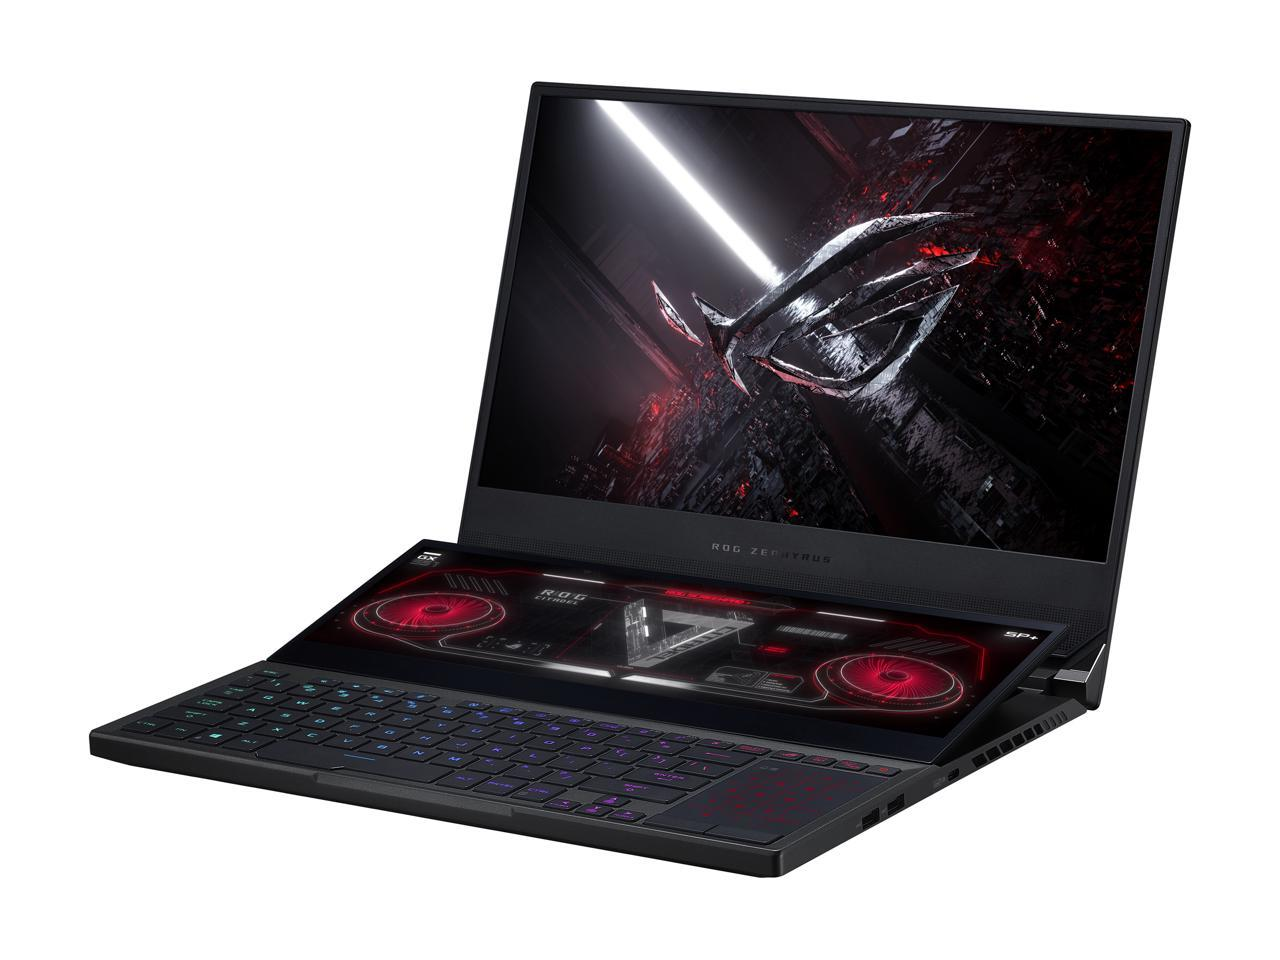 asus-rog-zephyrus-duo-se-15-laptop-with-amd-ryzen-9-5980hx-overclockable-cpu-listed-over-at-newegg_3